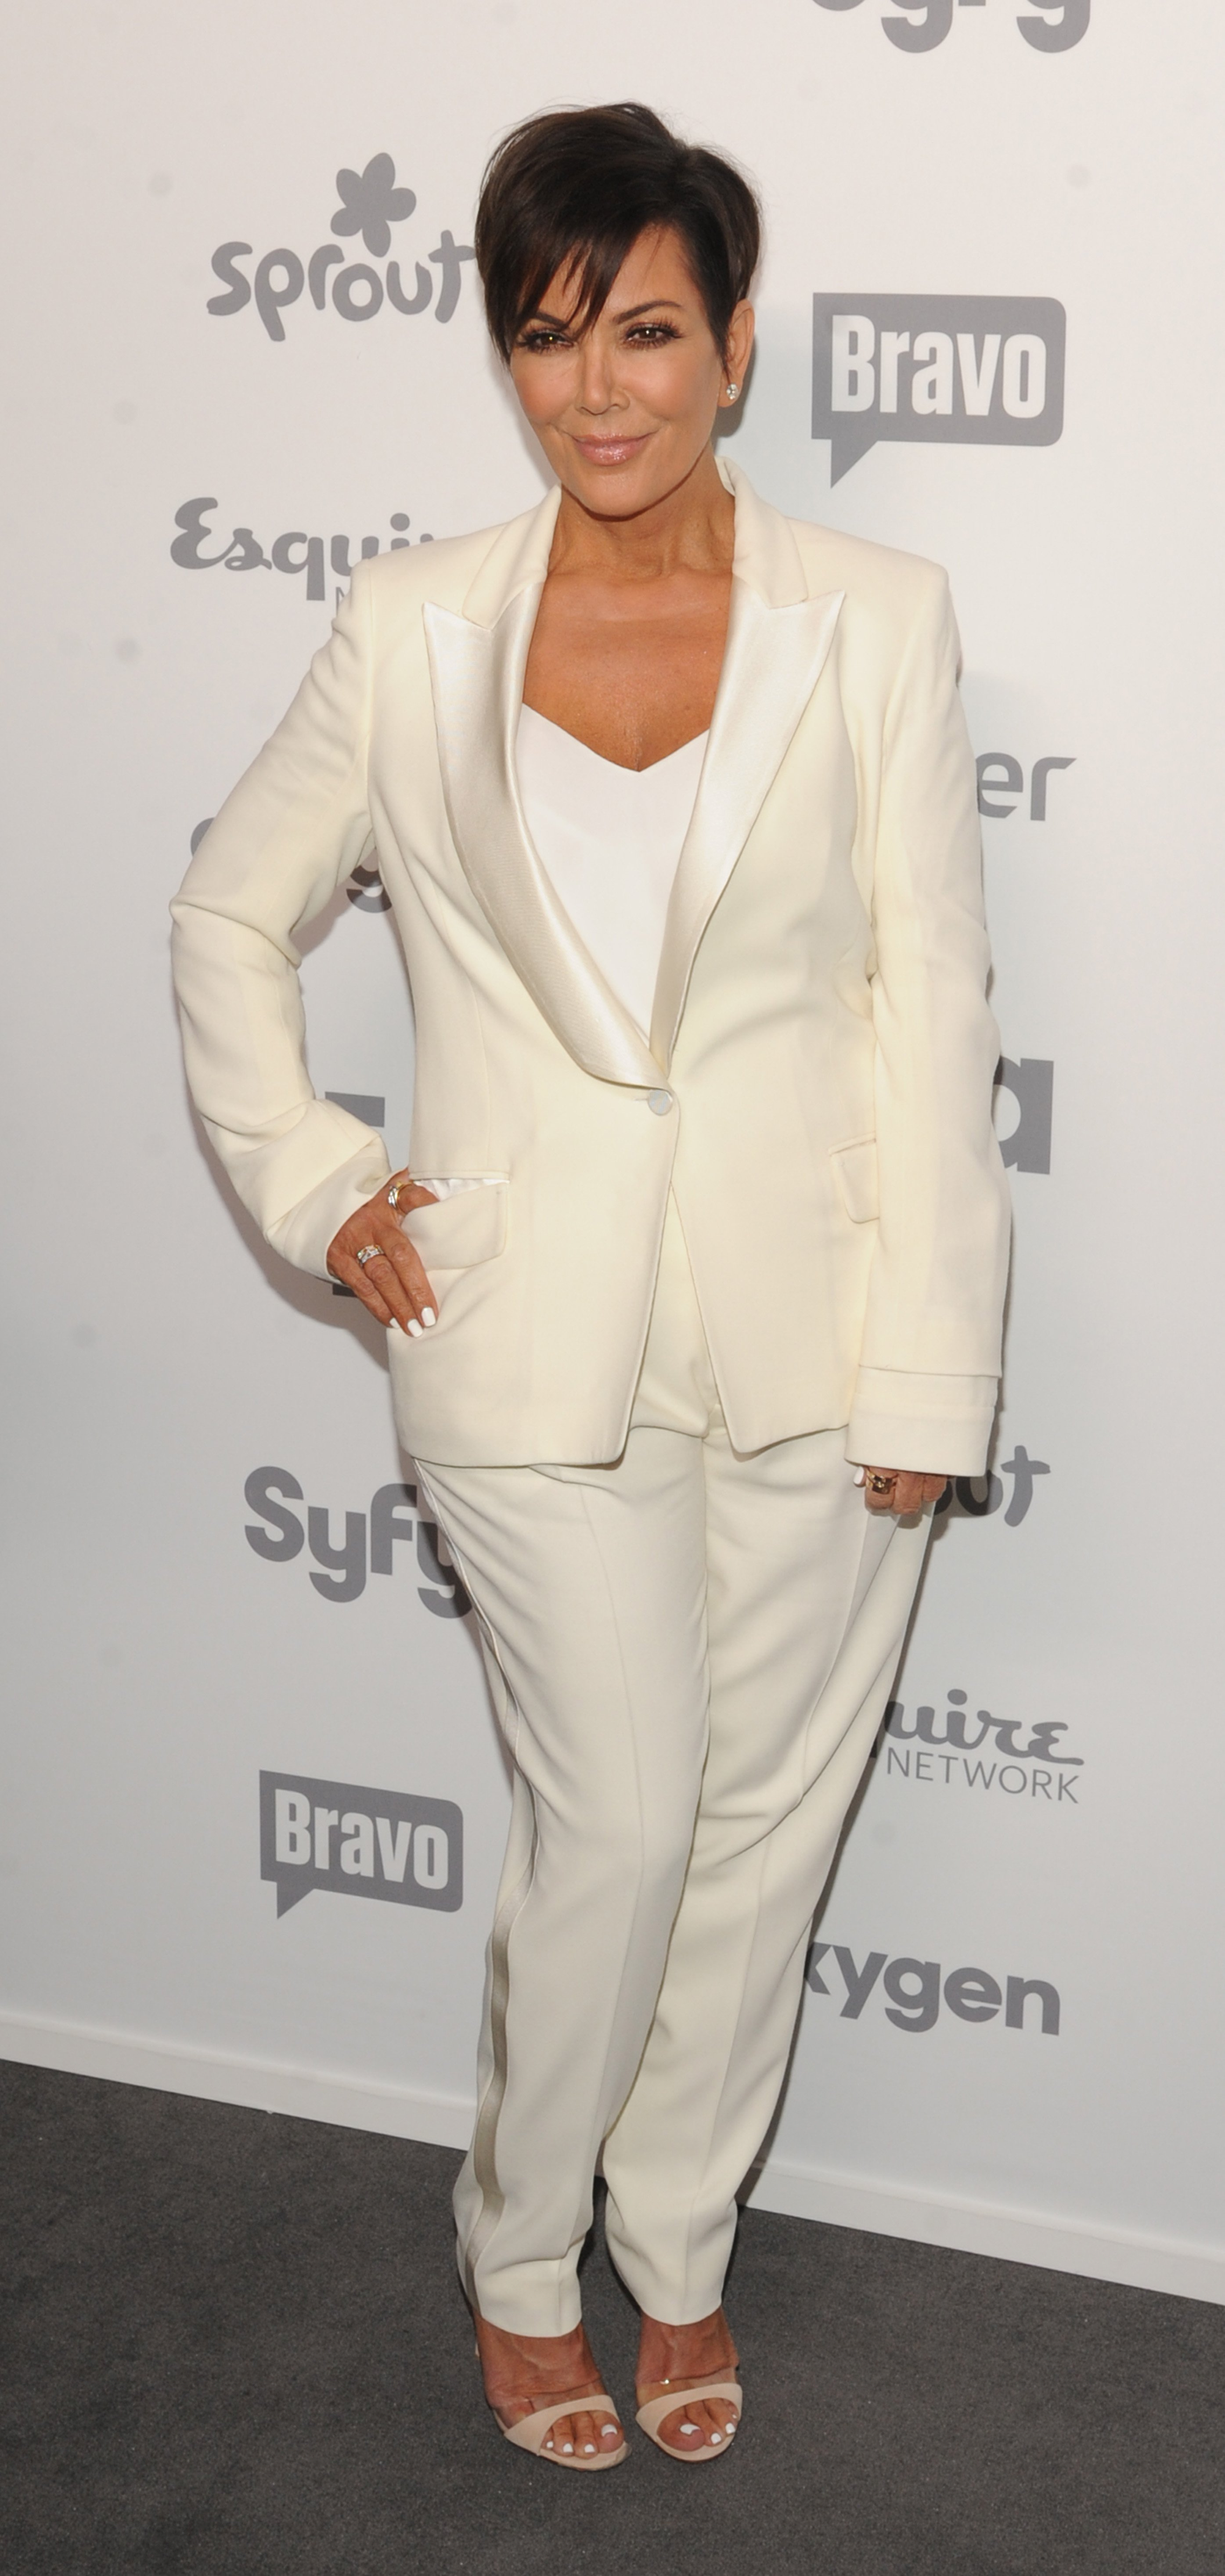 Kris Jenner attend the 2015 NBCUniversal Cable Entertainment Upfront at The Jacob K. Javits Convention Center on May 14, 2015 in New York City.